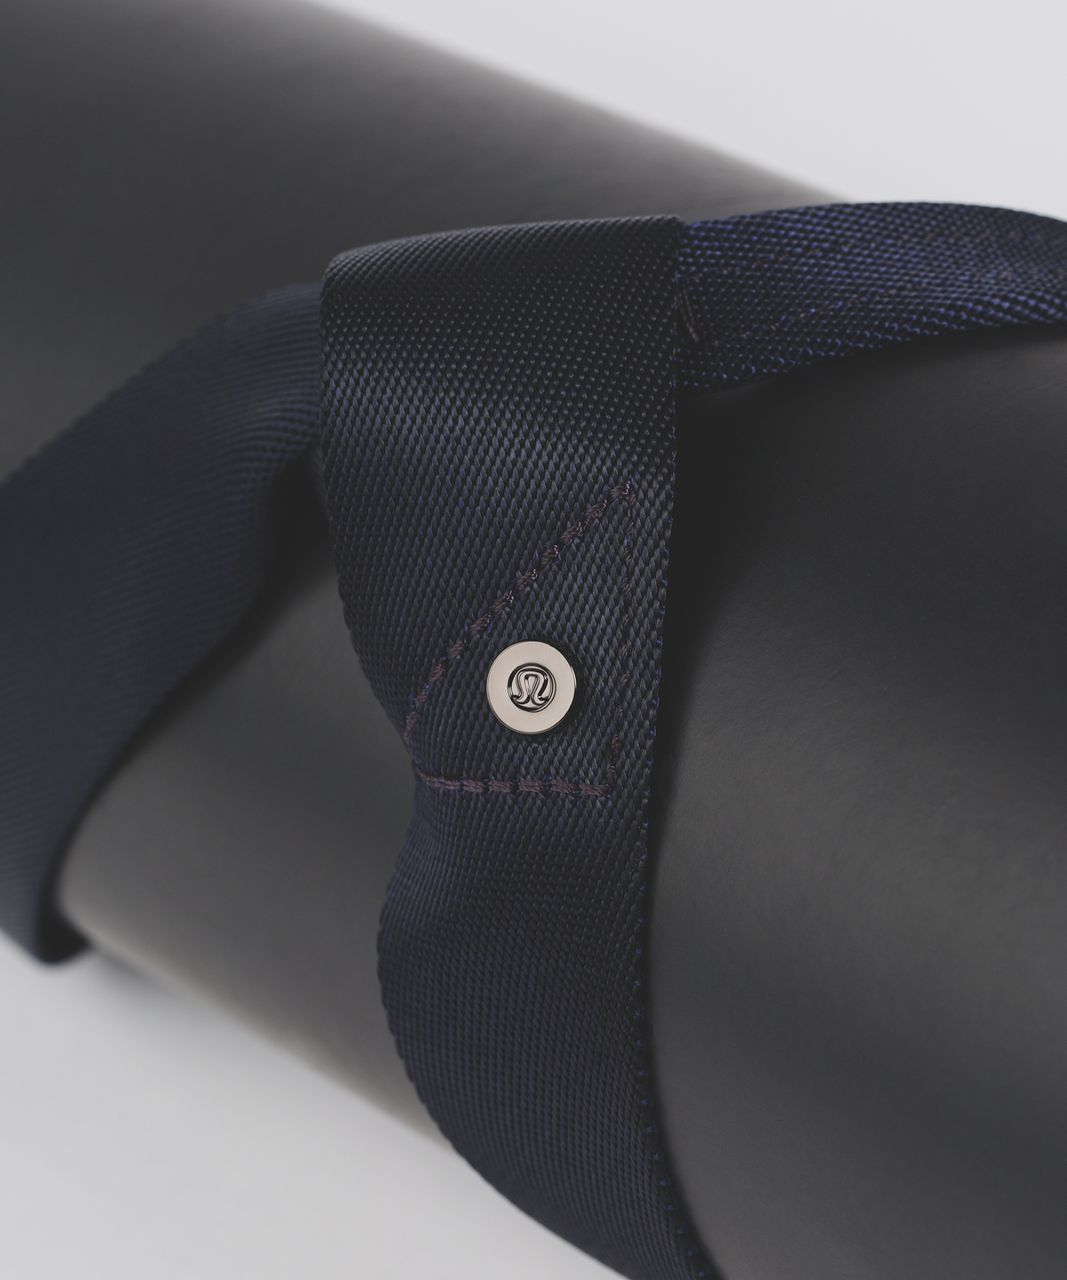 Lululemon Loop It Up Mat Strap - Midnight Navy / Blueberry Jam